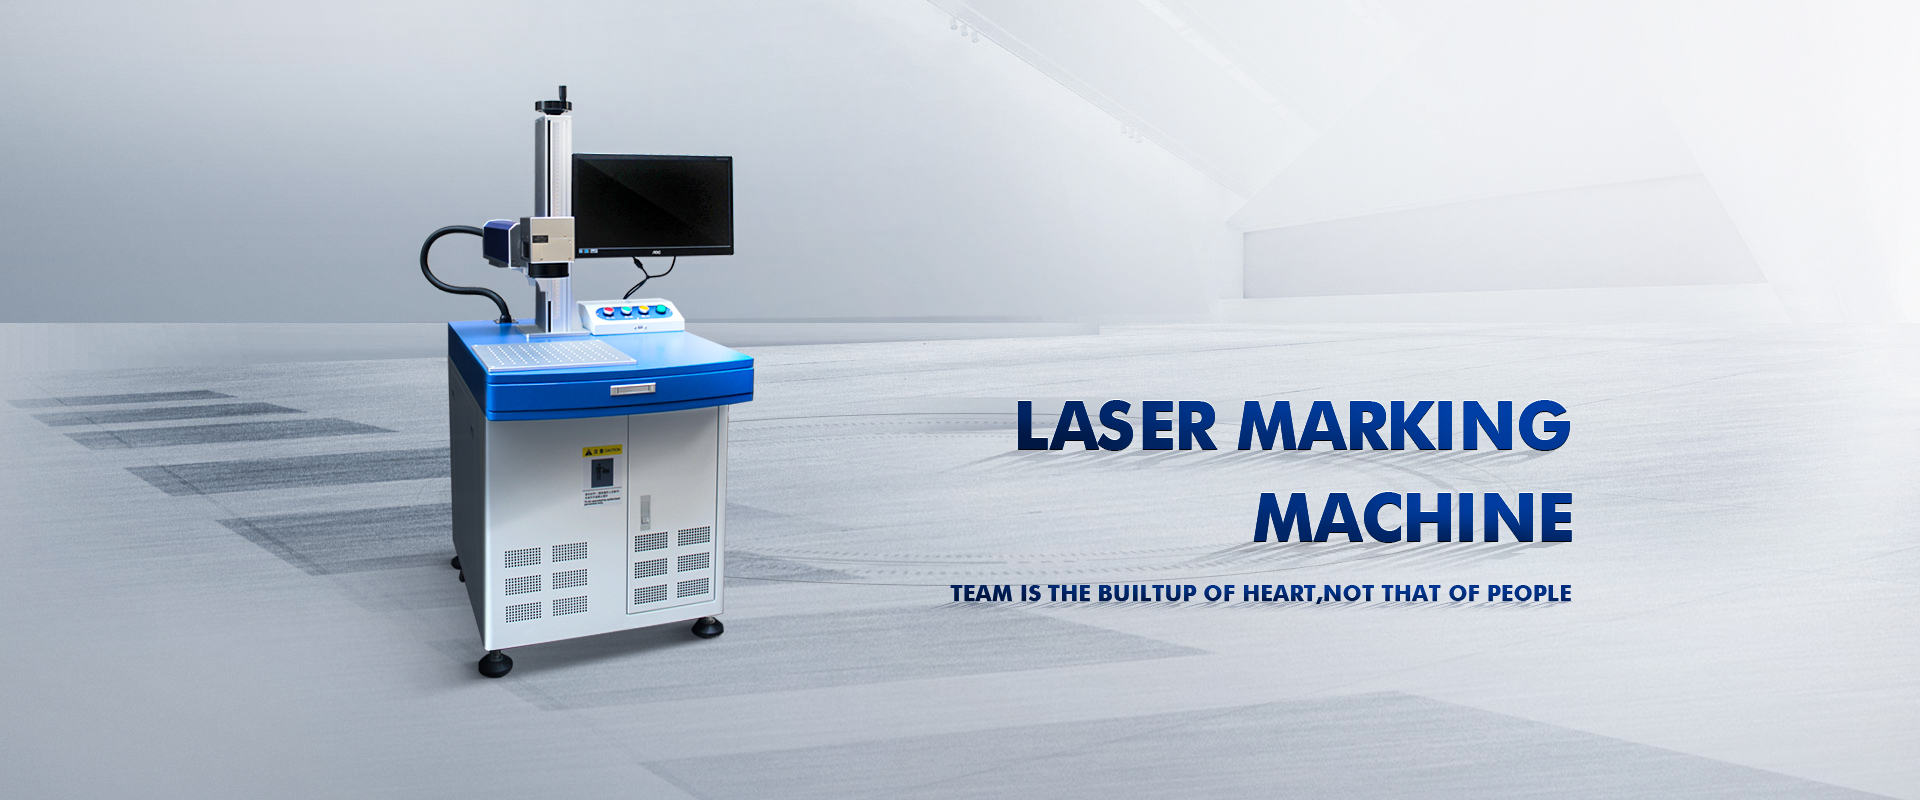 laser cutting machine,laser marking machine,fiber laser cutting machine,fiber laser marking machine,co2 laser cutting machine,Biaoke Laser Technology(Ningbo) Co., Ltd.